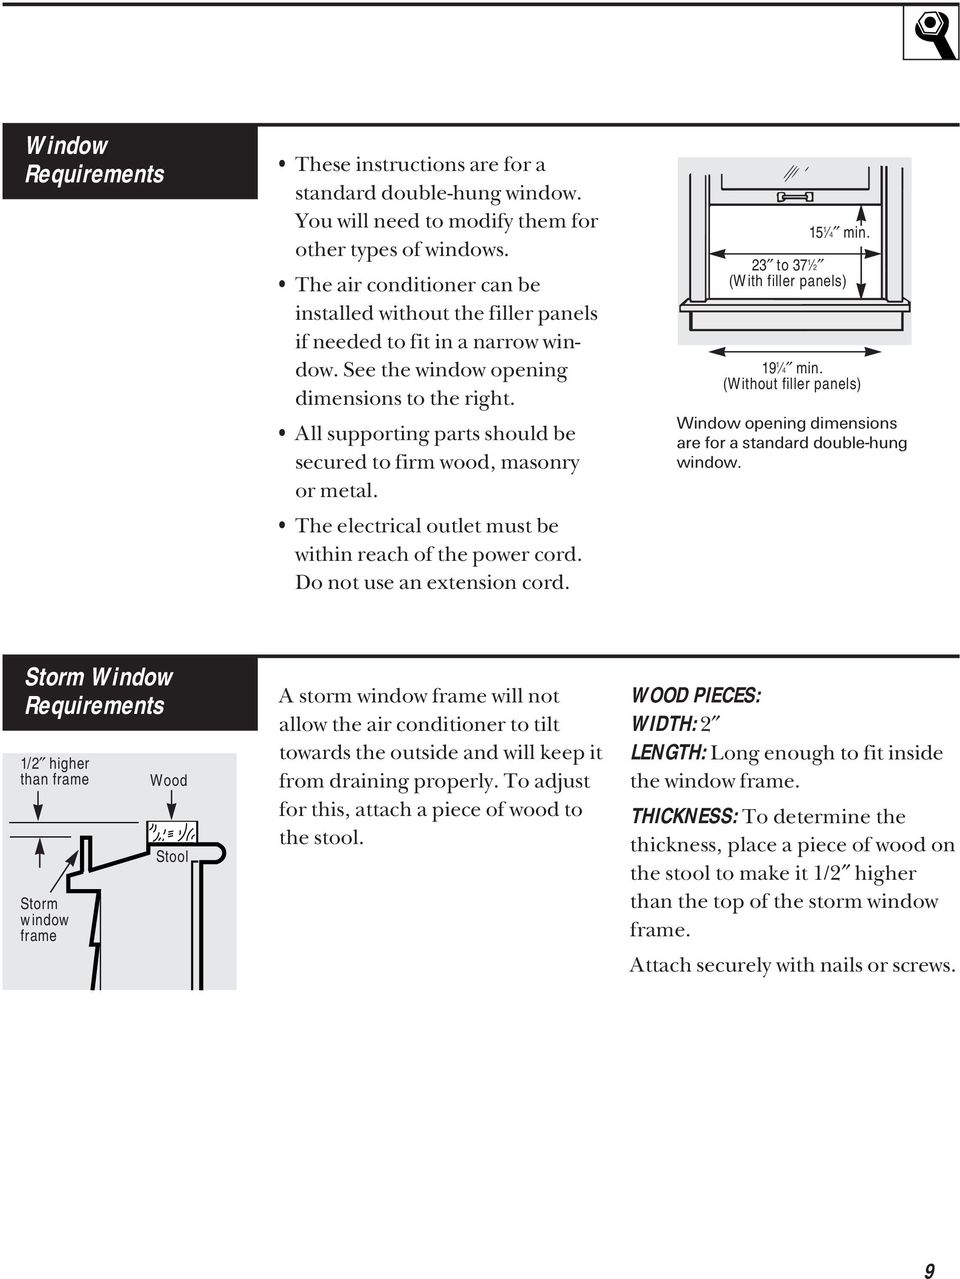 All supporting parts should be secured to firm wood, masonry or metal. The electrical outlet must be within reach of the power cord. Do not use an extension cord. 15 1 4 min.